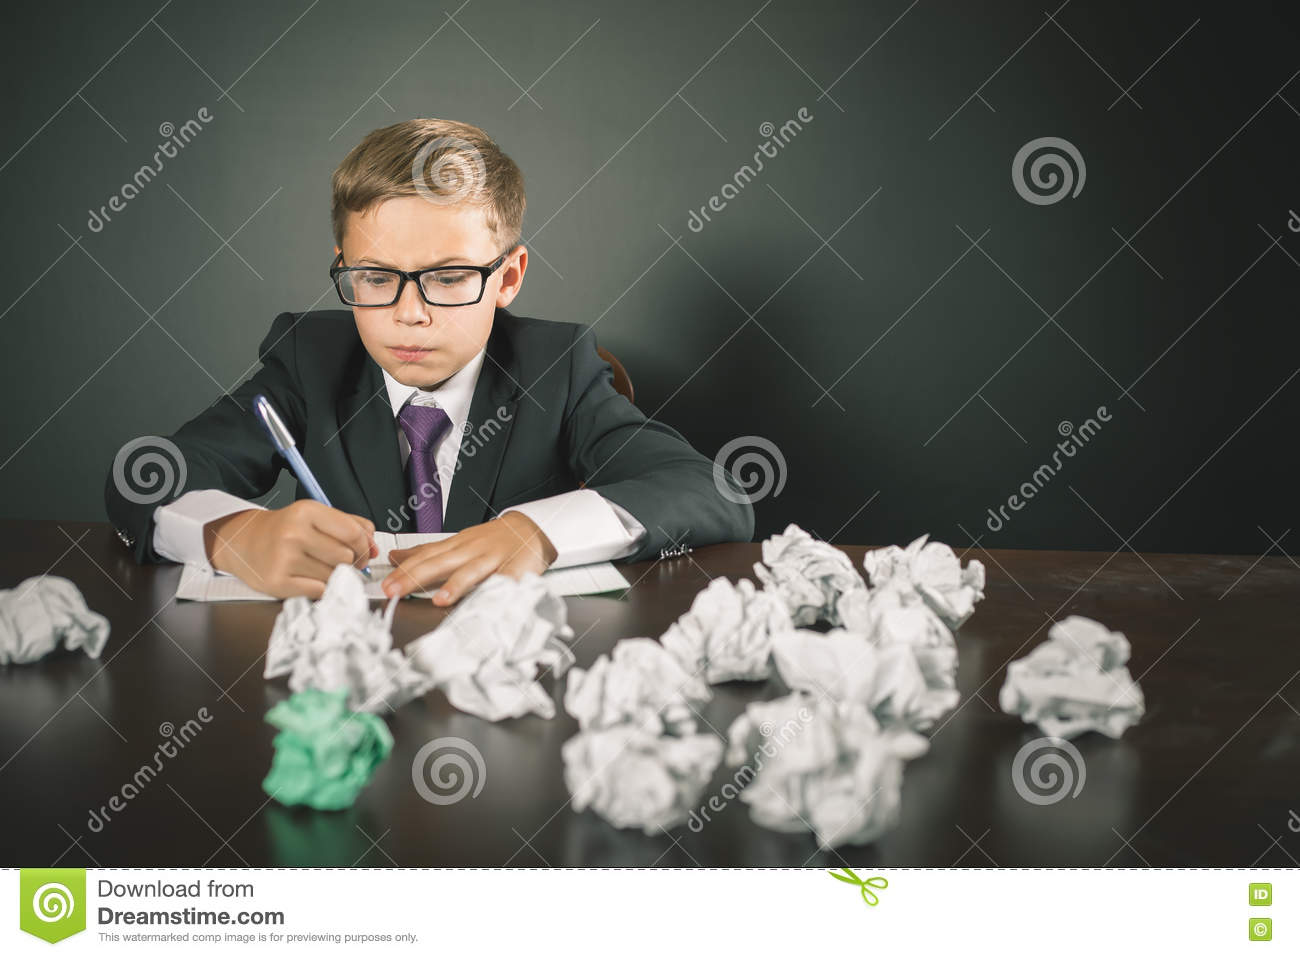 boy essay inspired school boy writing essay or exam stock photo  inspired school boy writing essay or exam stock photo image inspired school boy writing essay or